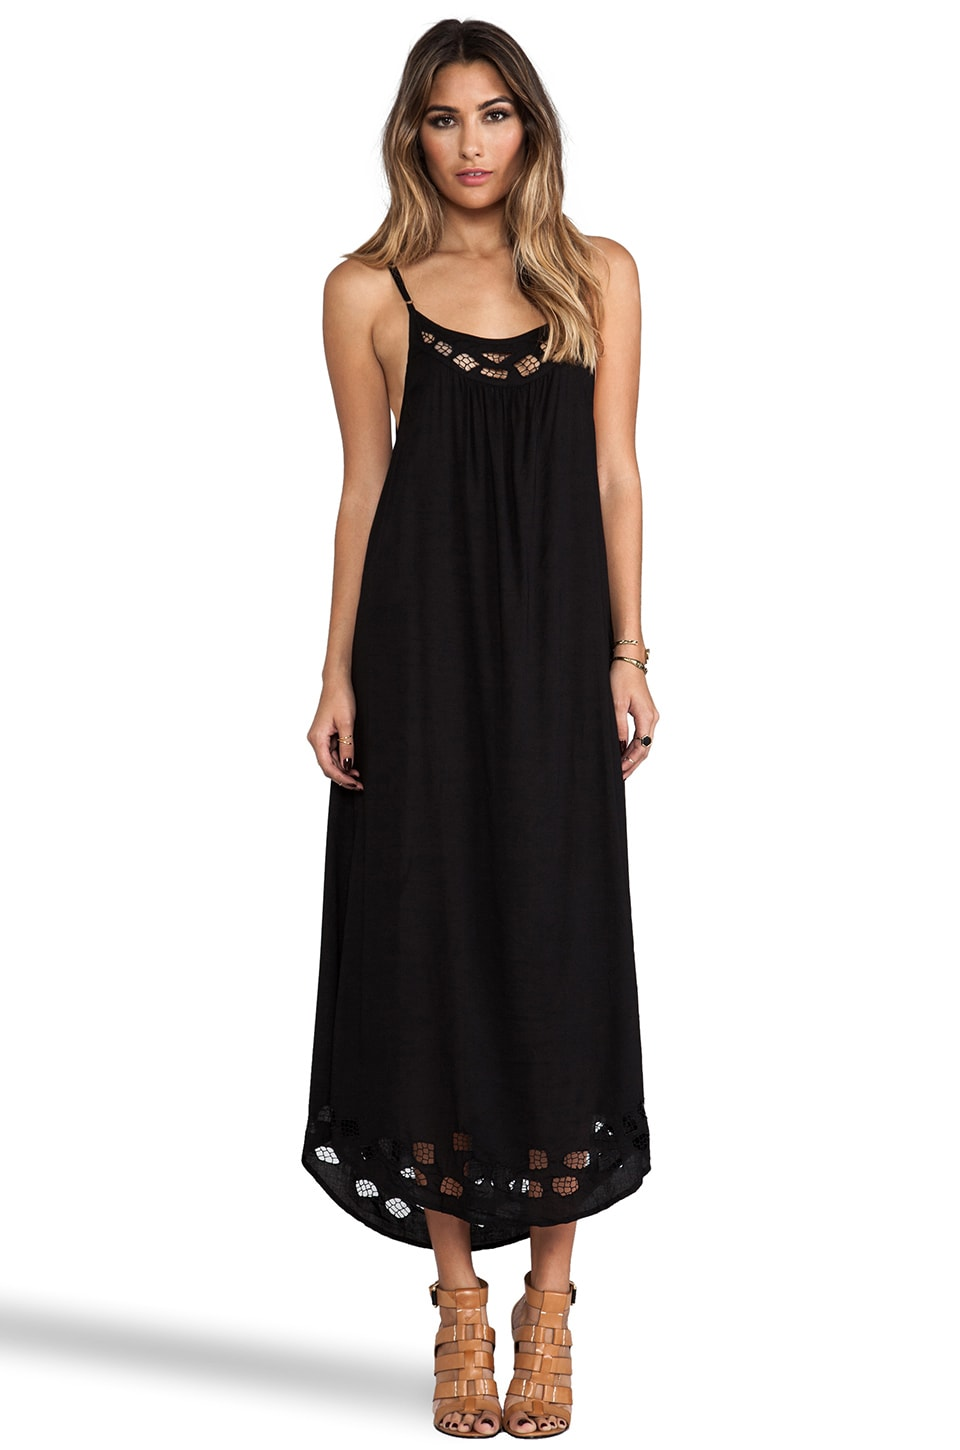 Tiare Hawaii Santorini Lace Yoke Maxi Dress in Black